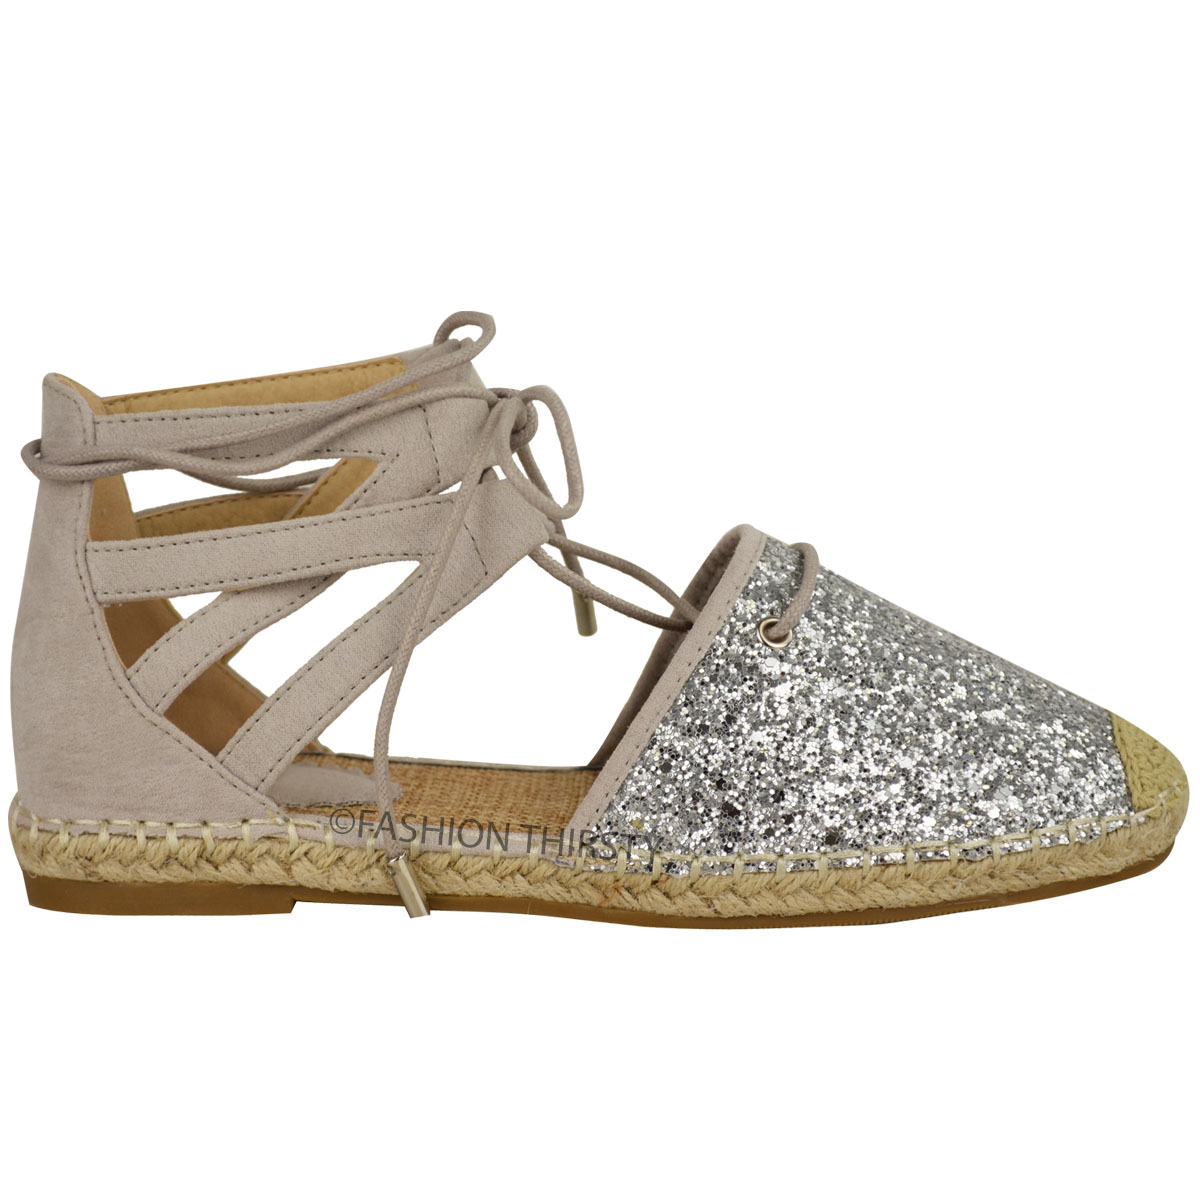 Flat heel sandals images - Womens Ladies Glitter Low Flat Heel Ankle Lace